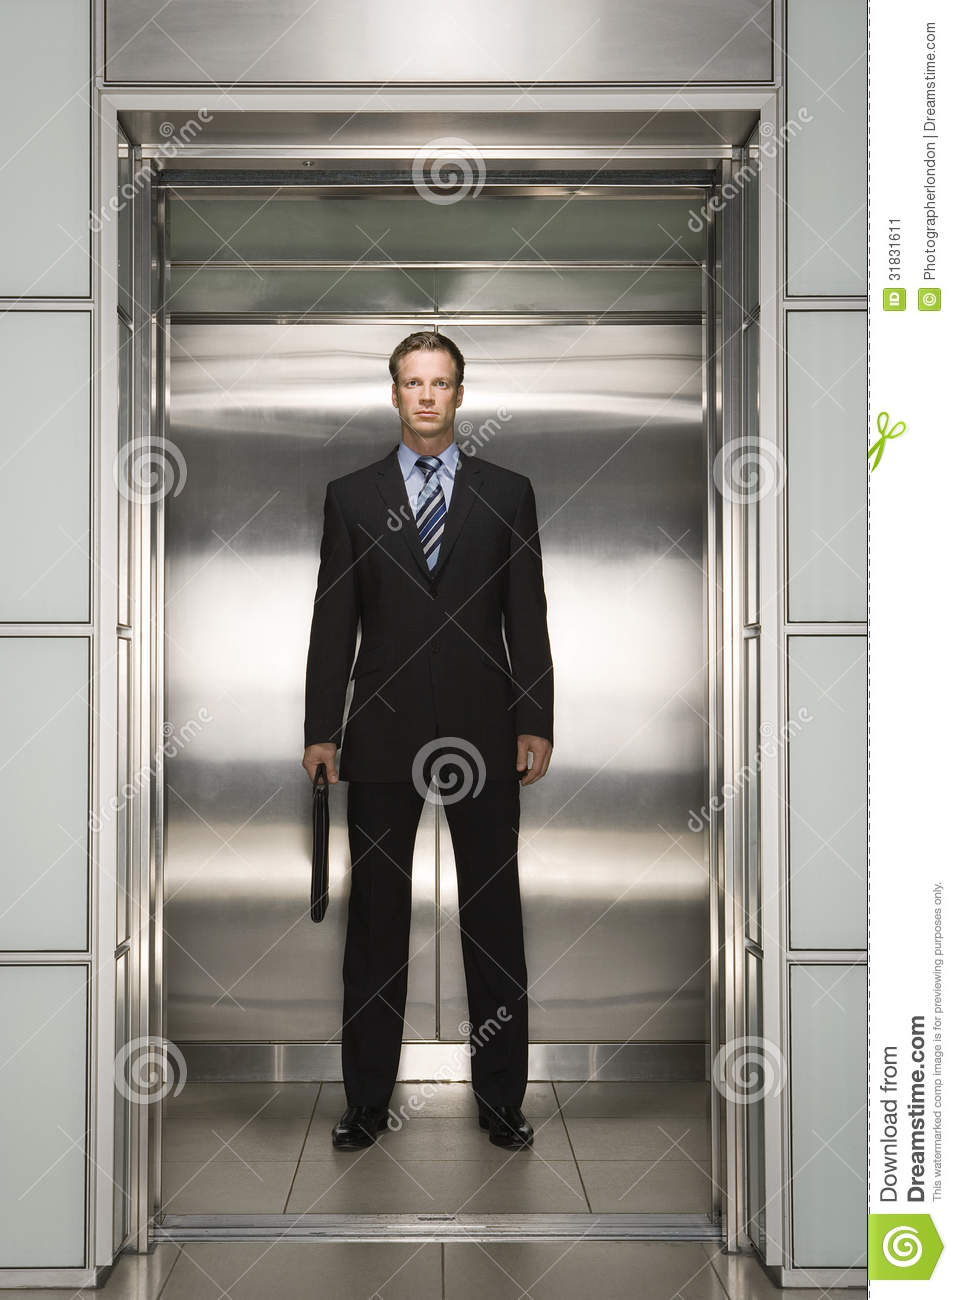 confident businessman with briefcase standing in elevator